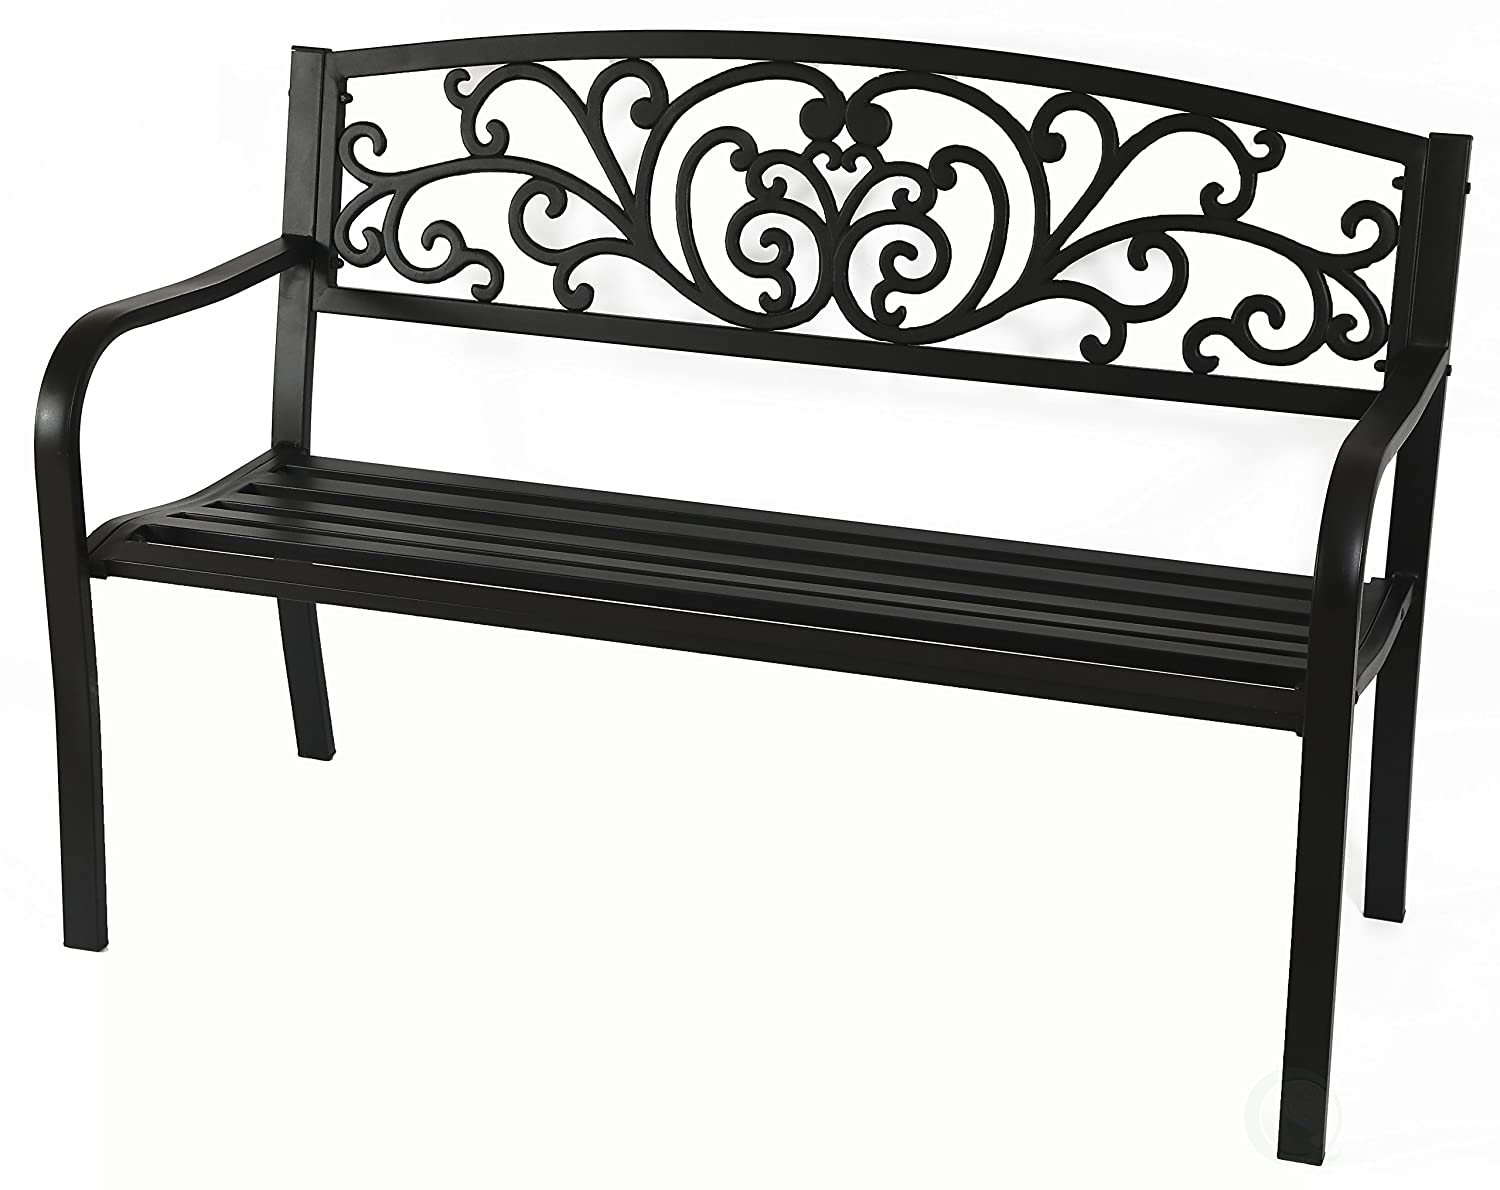 Gardenised Black Patio Garden Park Yard 50 Outdoor Steel Bench Powder Coated with Cast Iron Back QI003333L